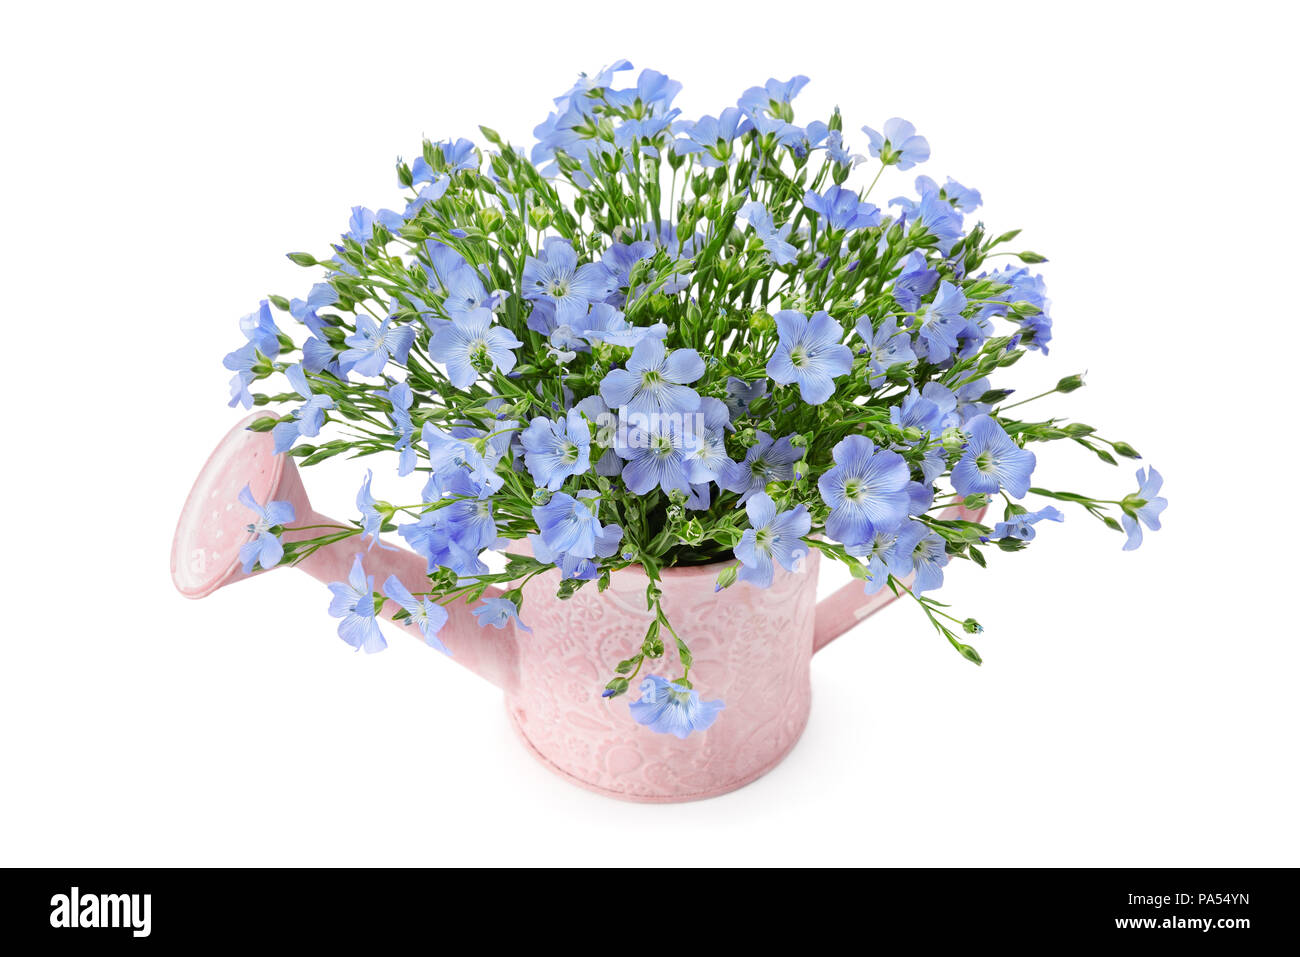 Flax Flowers In A Watering Can Isolated On White Background Stock